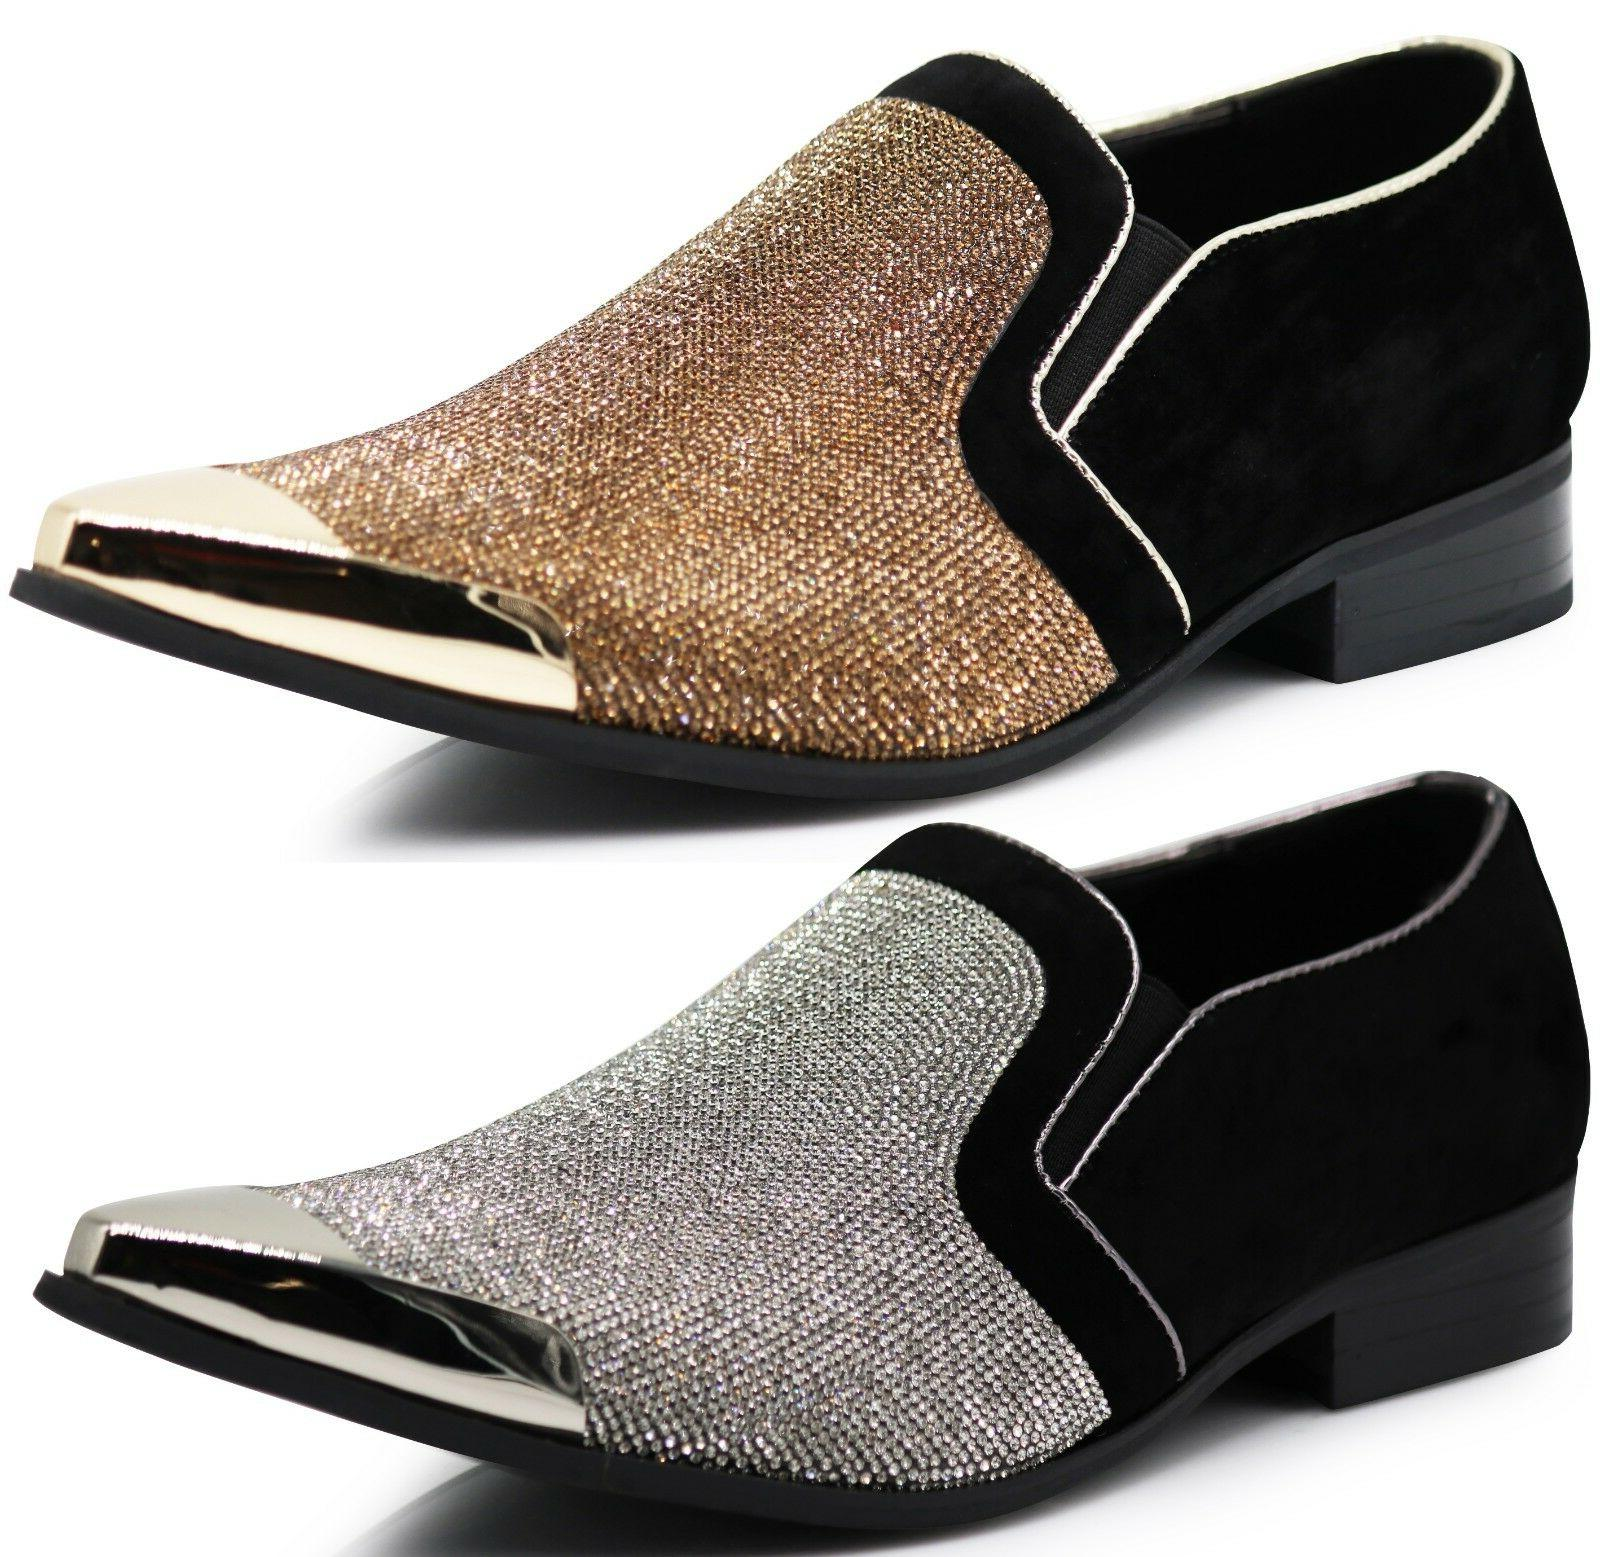 New Men Metal Toe Dress Shoes Rhinestone Diamond Loafers Sli